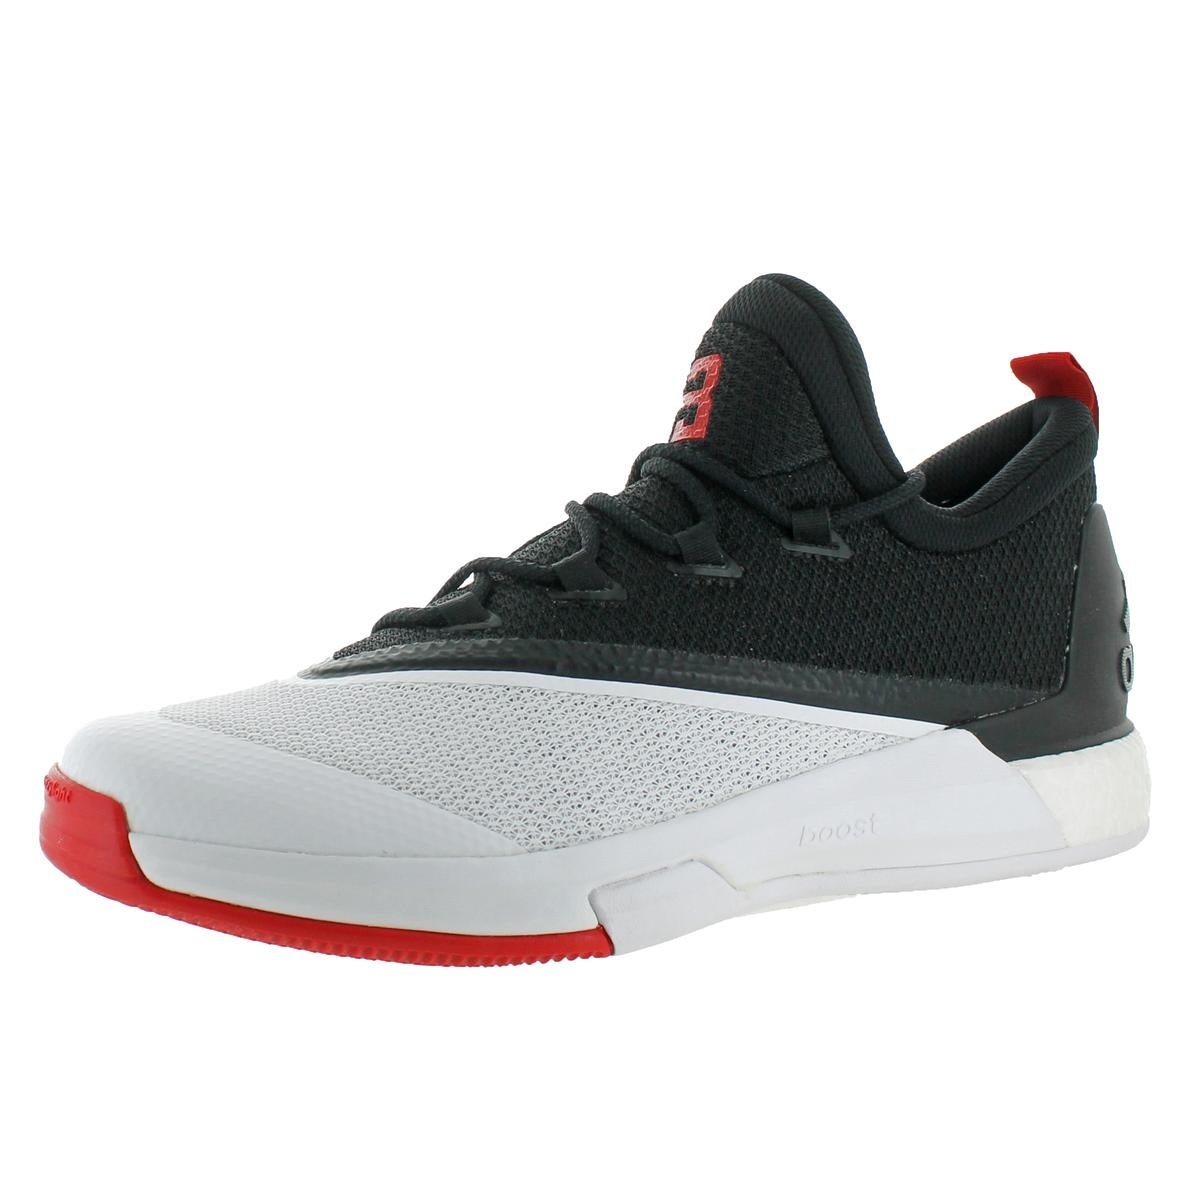 buy online ae137 74e8f Shop Adidas Mens Harden Crazylight Boost 2.5 Basketball Shoes Mid Top  Stable Frame - 10.5 medium (d) - Free Shipping Today - Overstock - 22612808